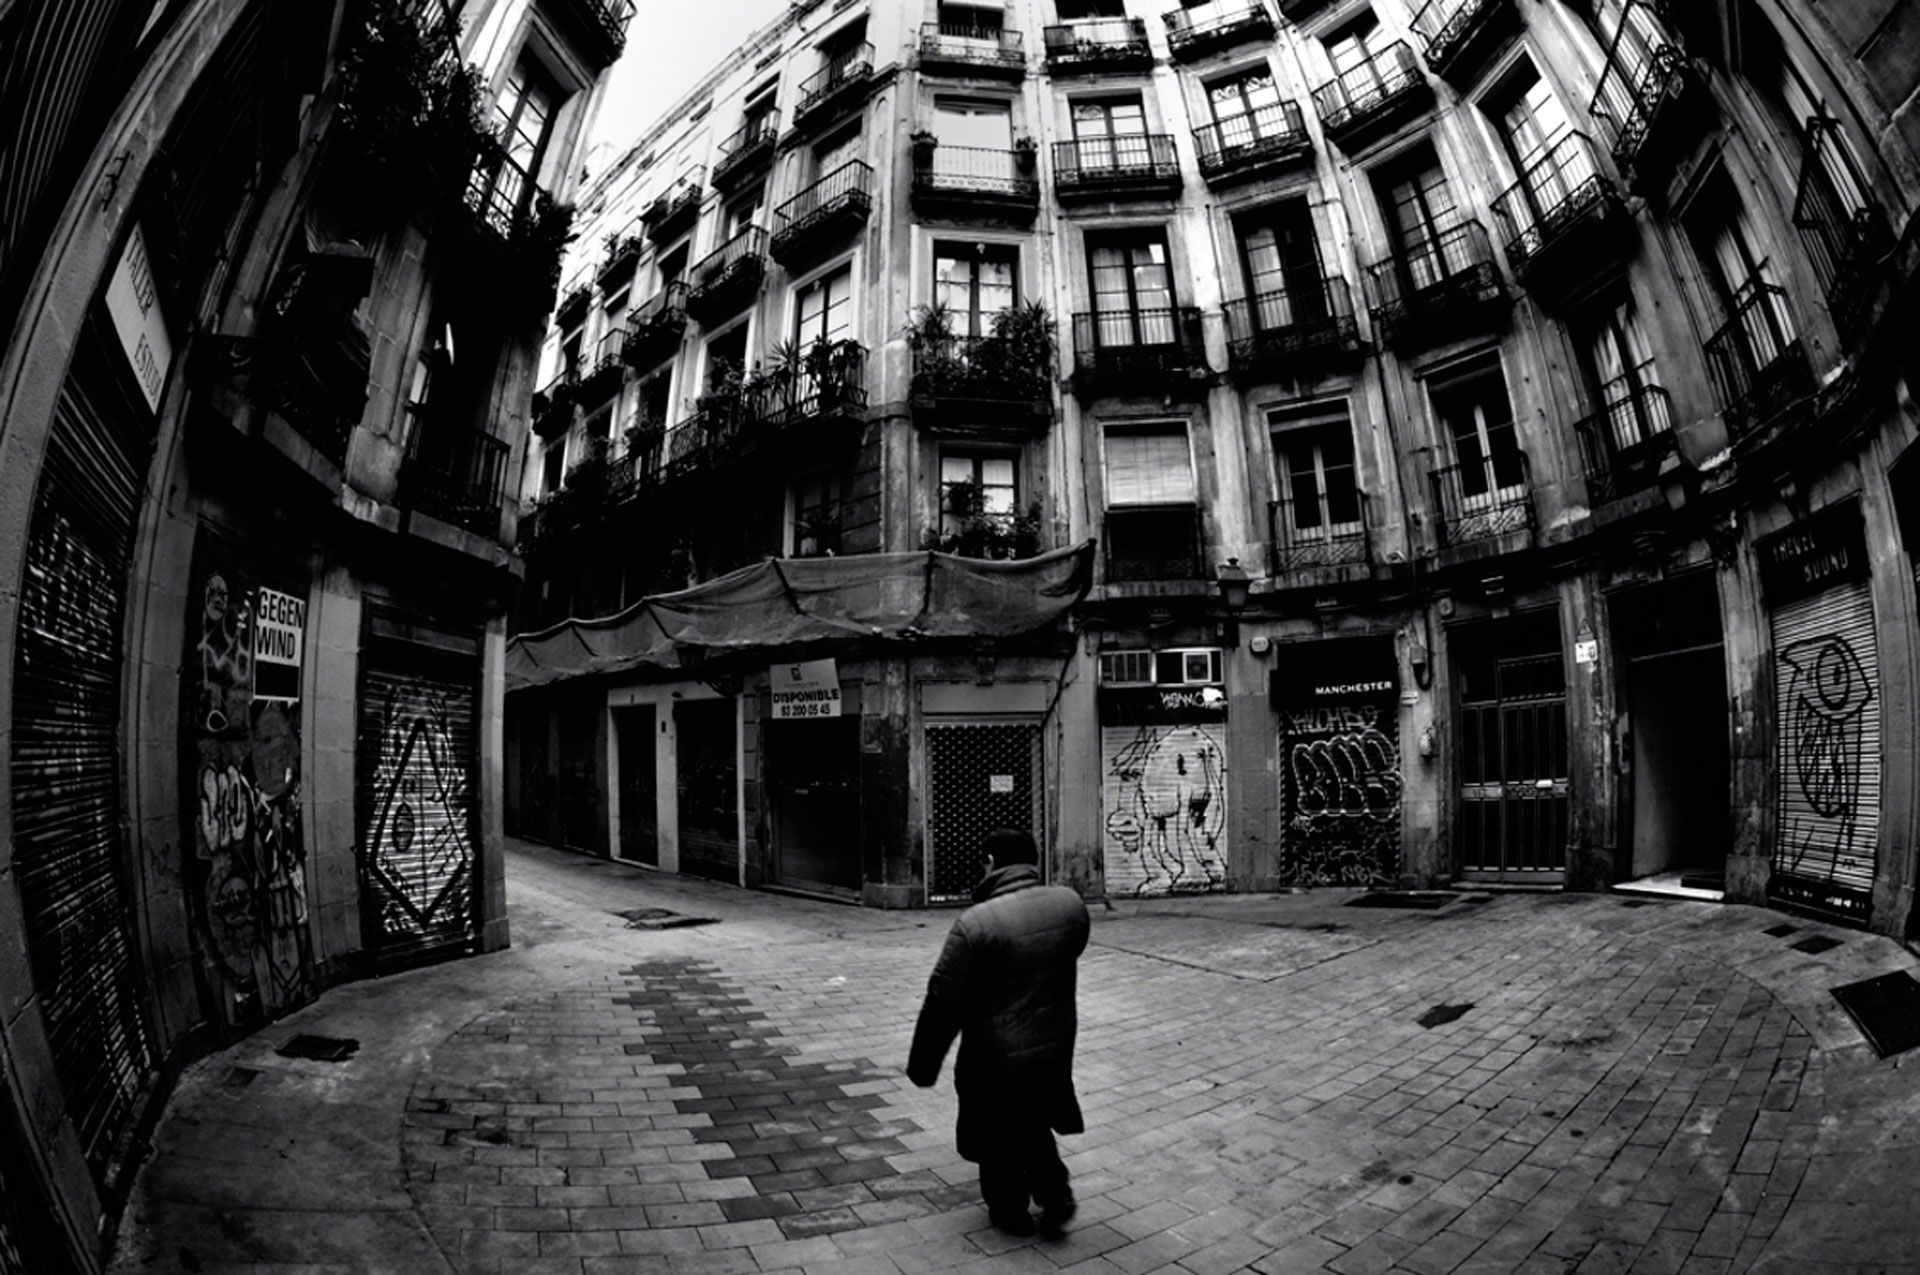 Barcelona Photography Tours offer a combined photo tour and editing class.